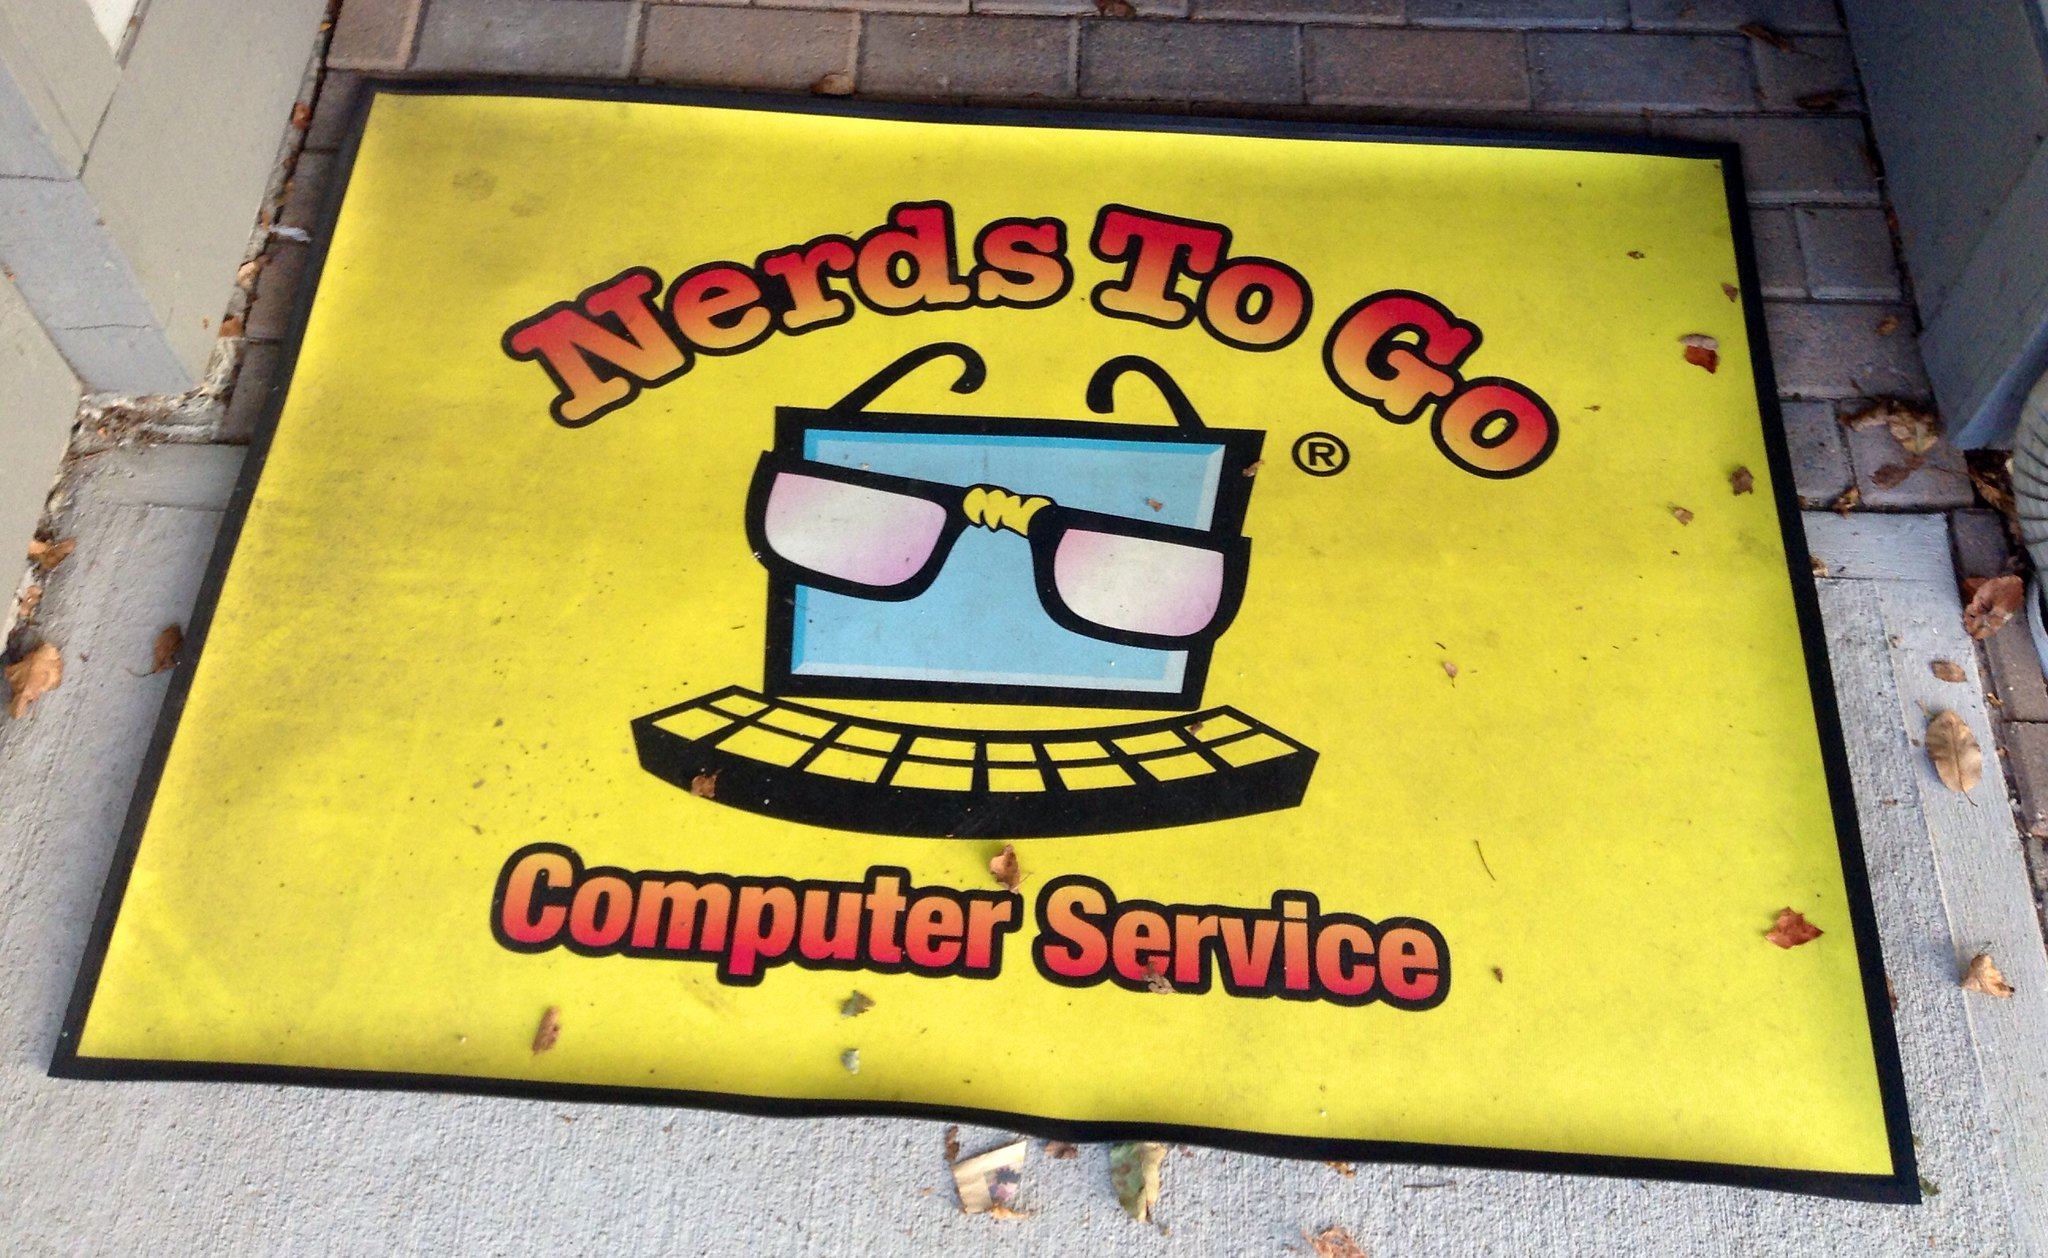 Mike Mozart Nerds To Go Computer Service - CC BY 2.0